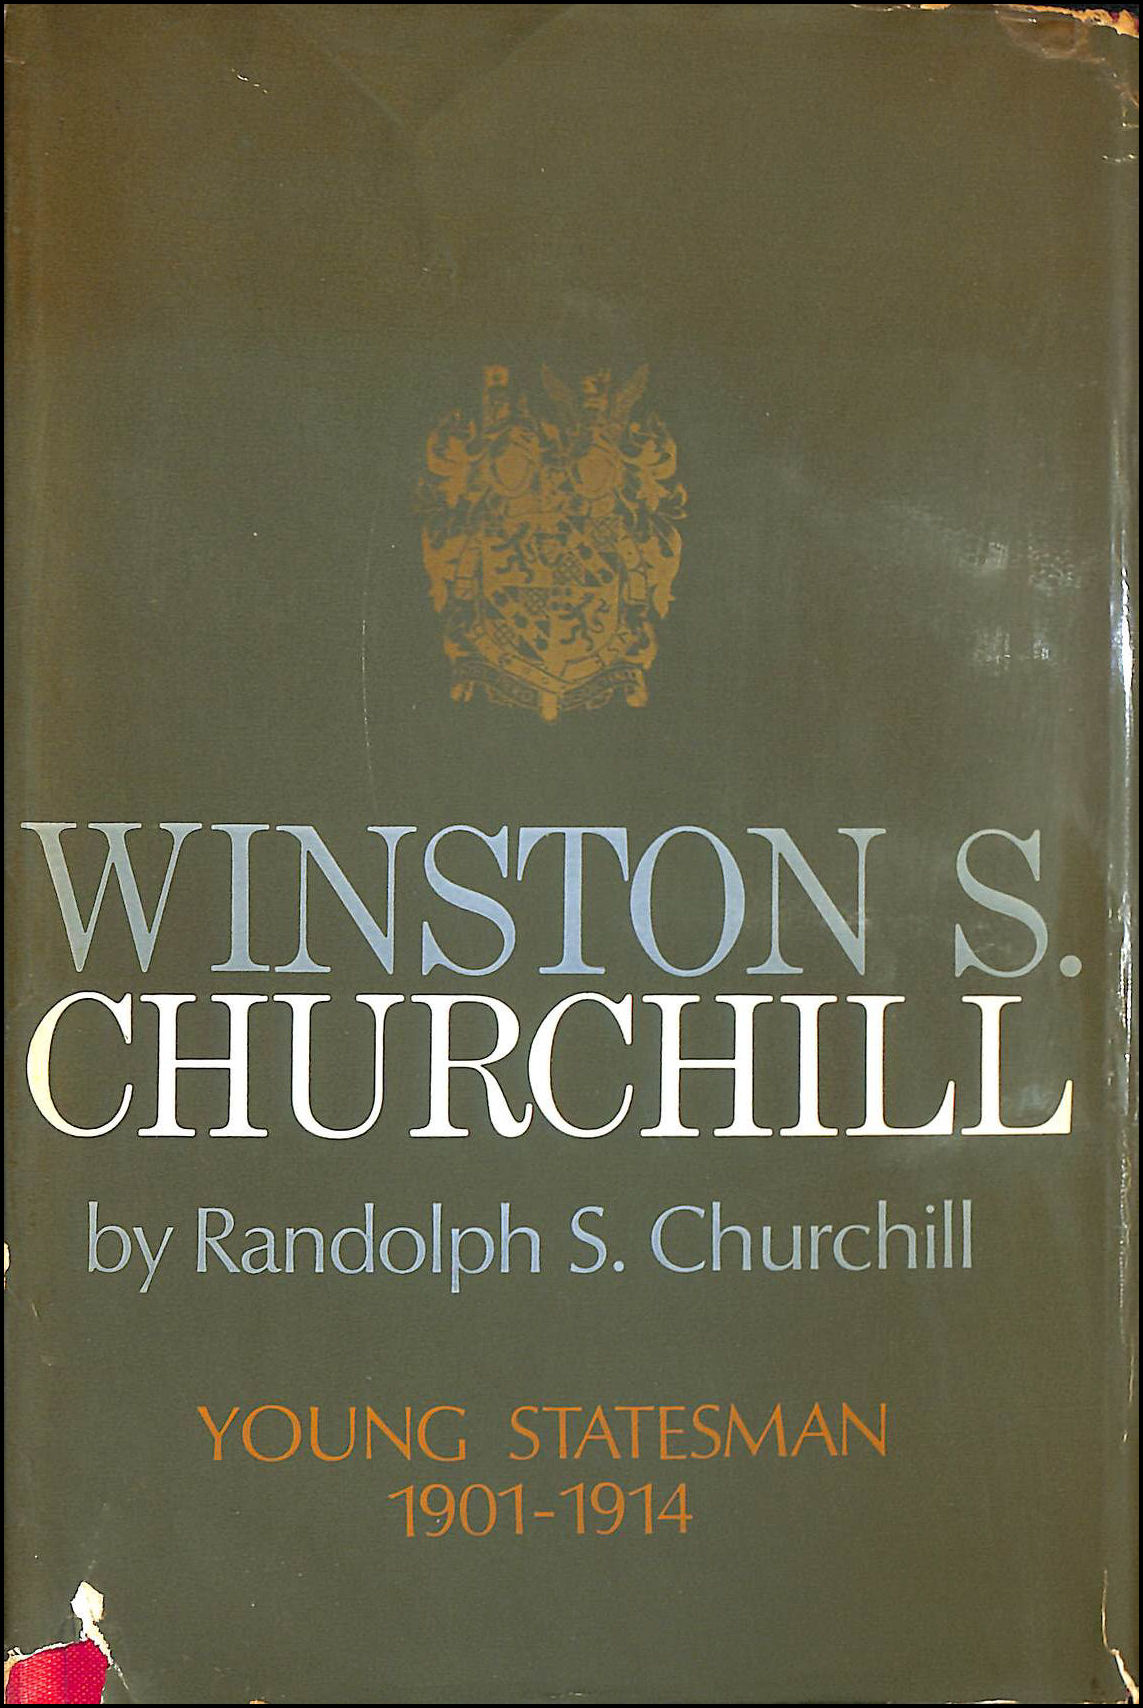 Winston S. Churchill Volume II Young Statesman 1901-1914, Churchill, Randolph S.